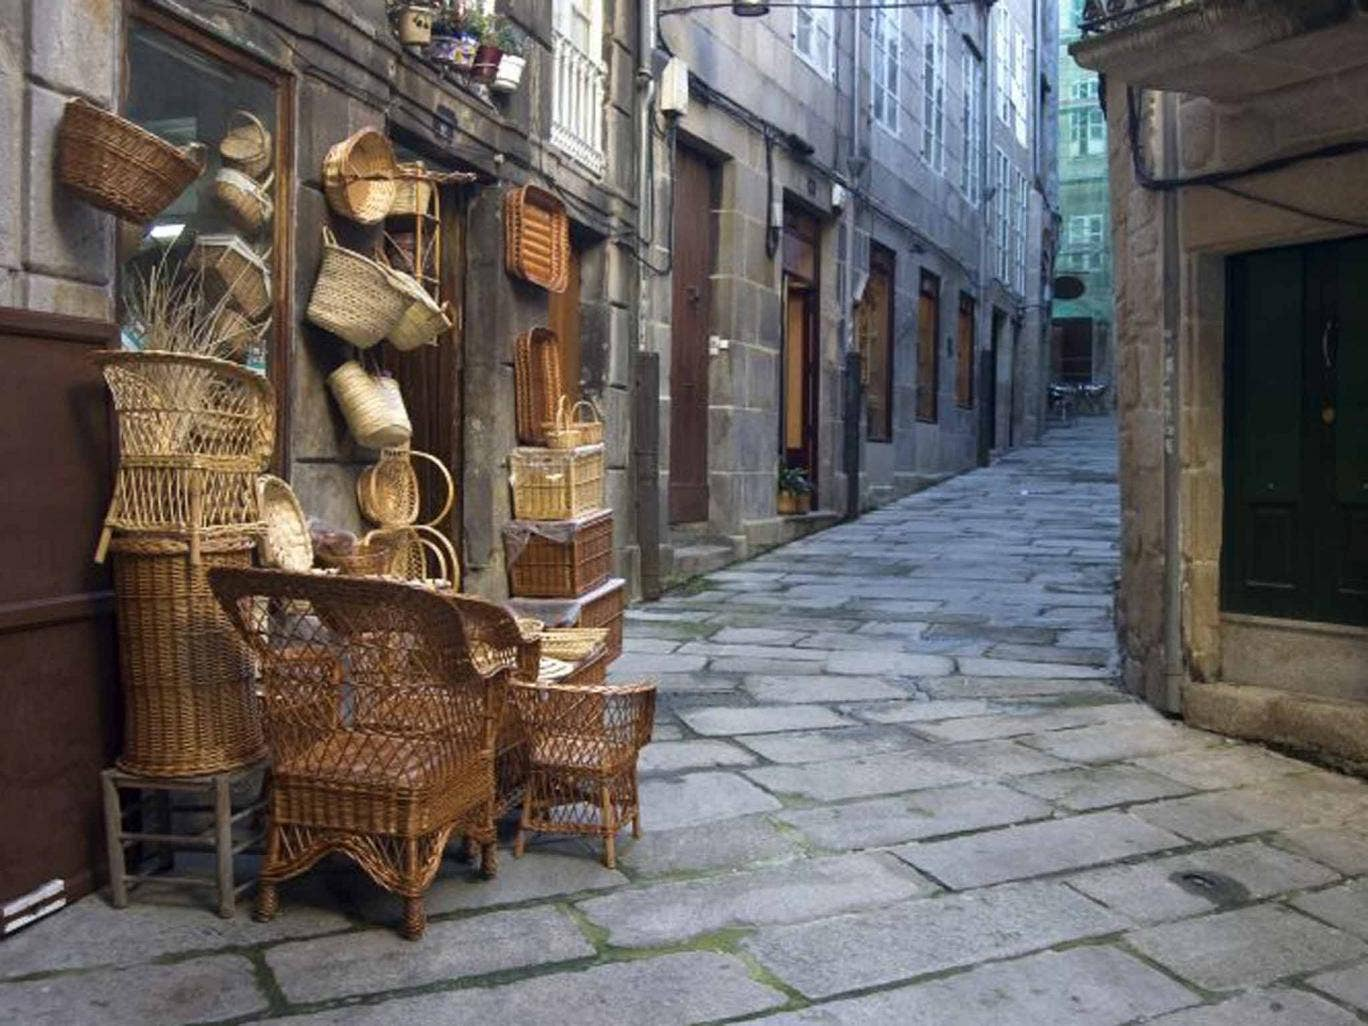 Vigo travel tips where to go and what to see in 48 hours the vigo travel tips where to go and what to see in 48 hours the independent negle Images